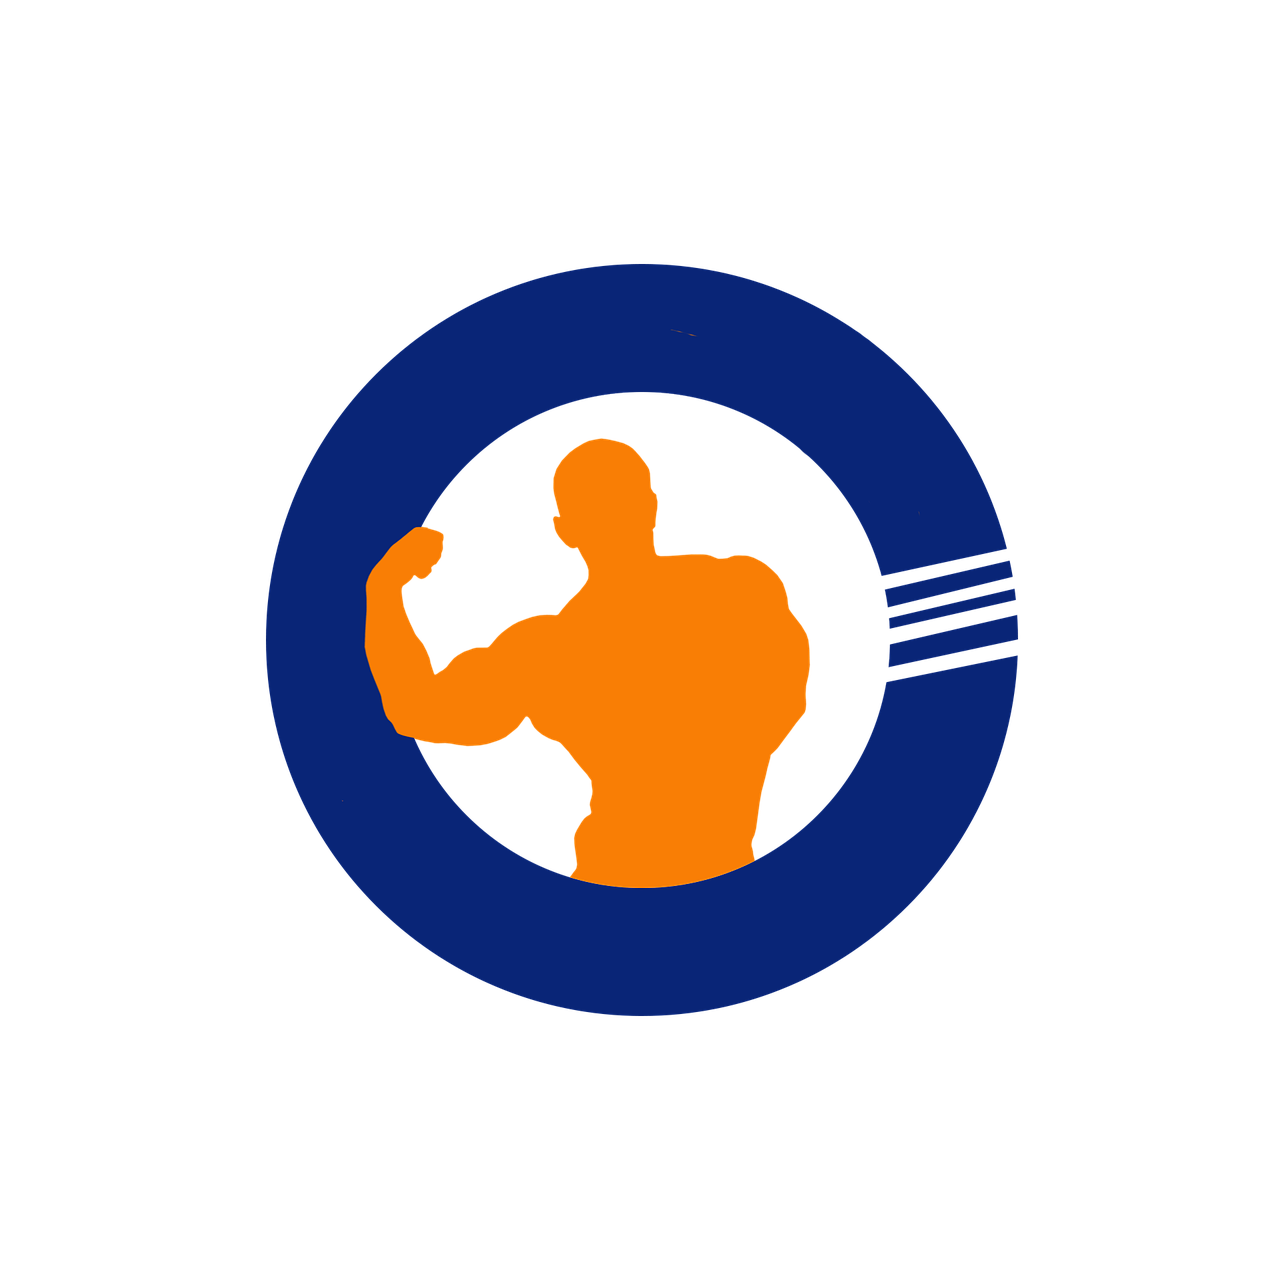 gym weight loss muscle free image on pixabay https creativecommons org licenses publicdomain